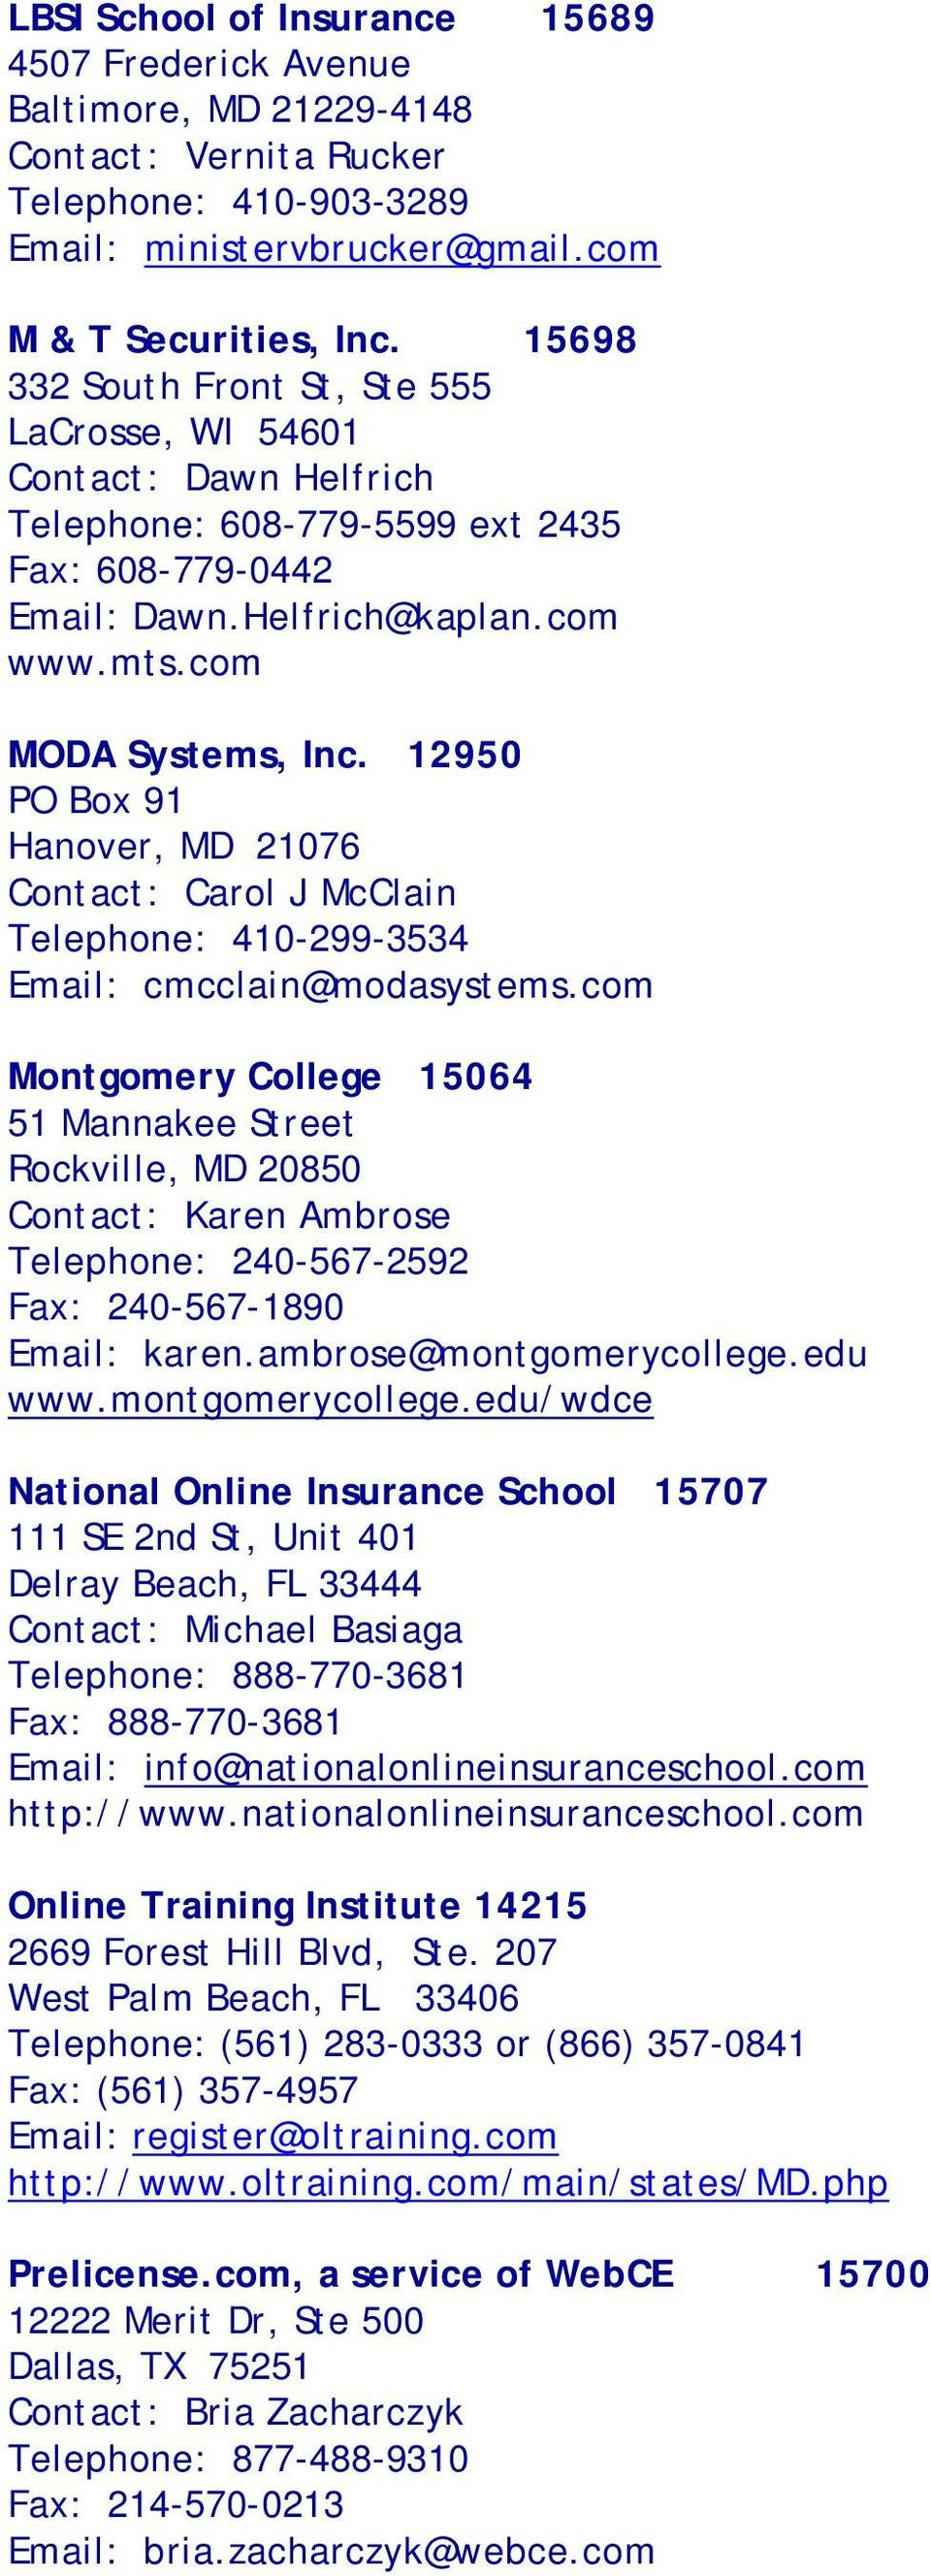 12950 PO Box 91 Hanover, MD 21076 Contact: Carol J McClain Telephone: 410-299-3534 Email: cmcclain@modasystems.